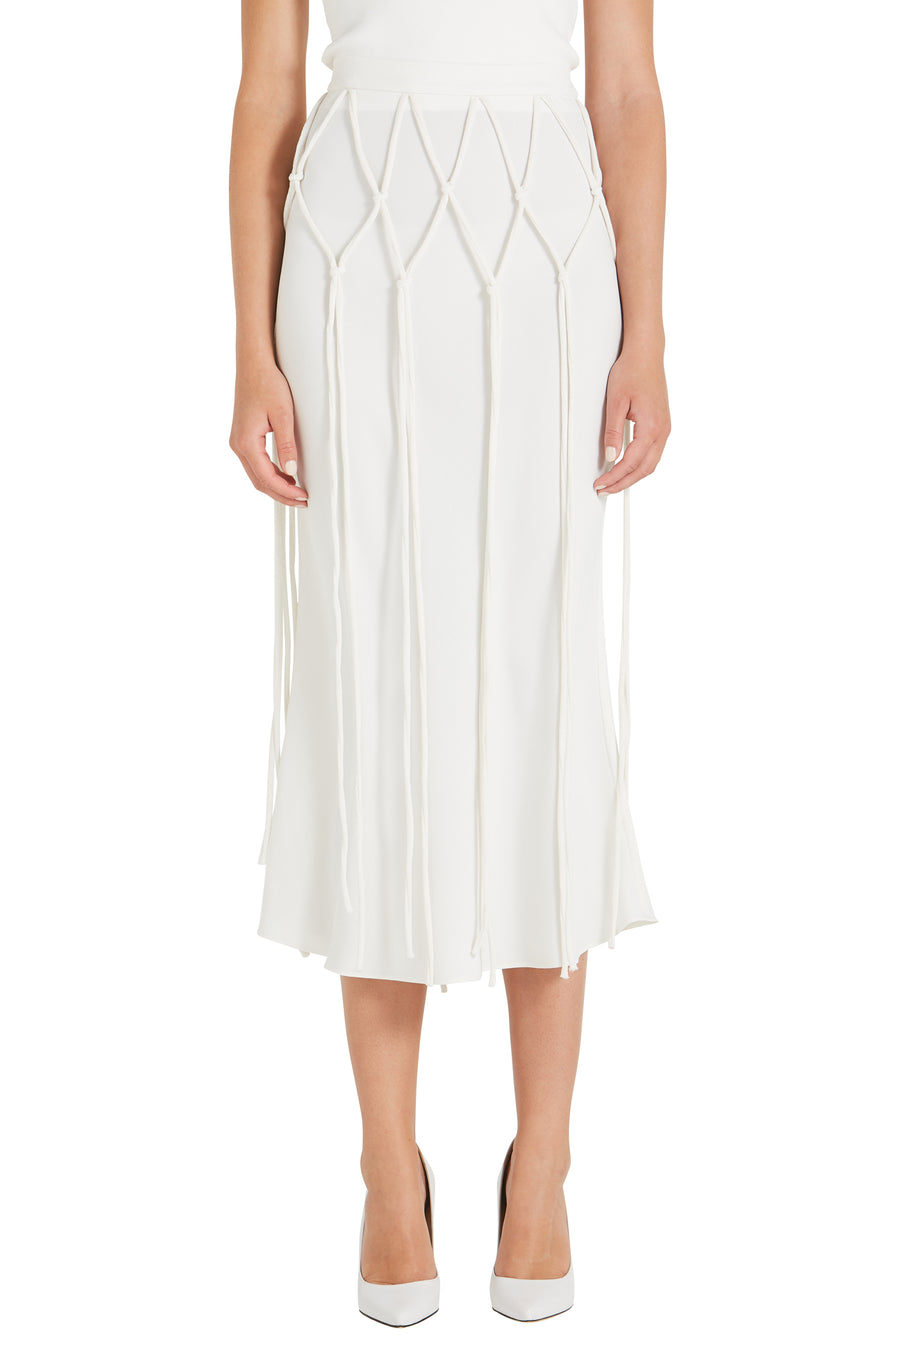 Trend the shop the v front skirt forecasting dress in autumn in 2019